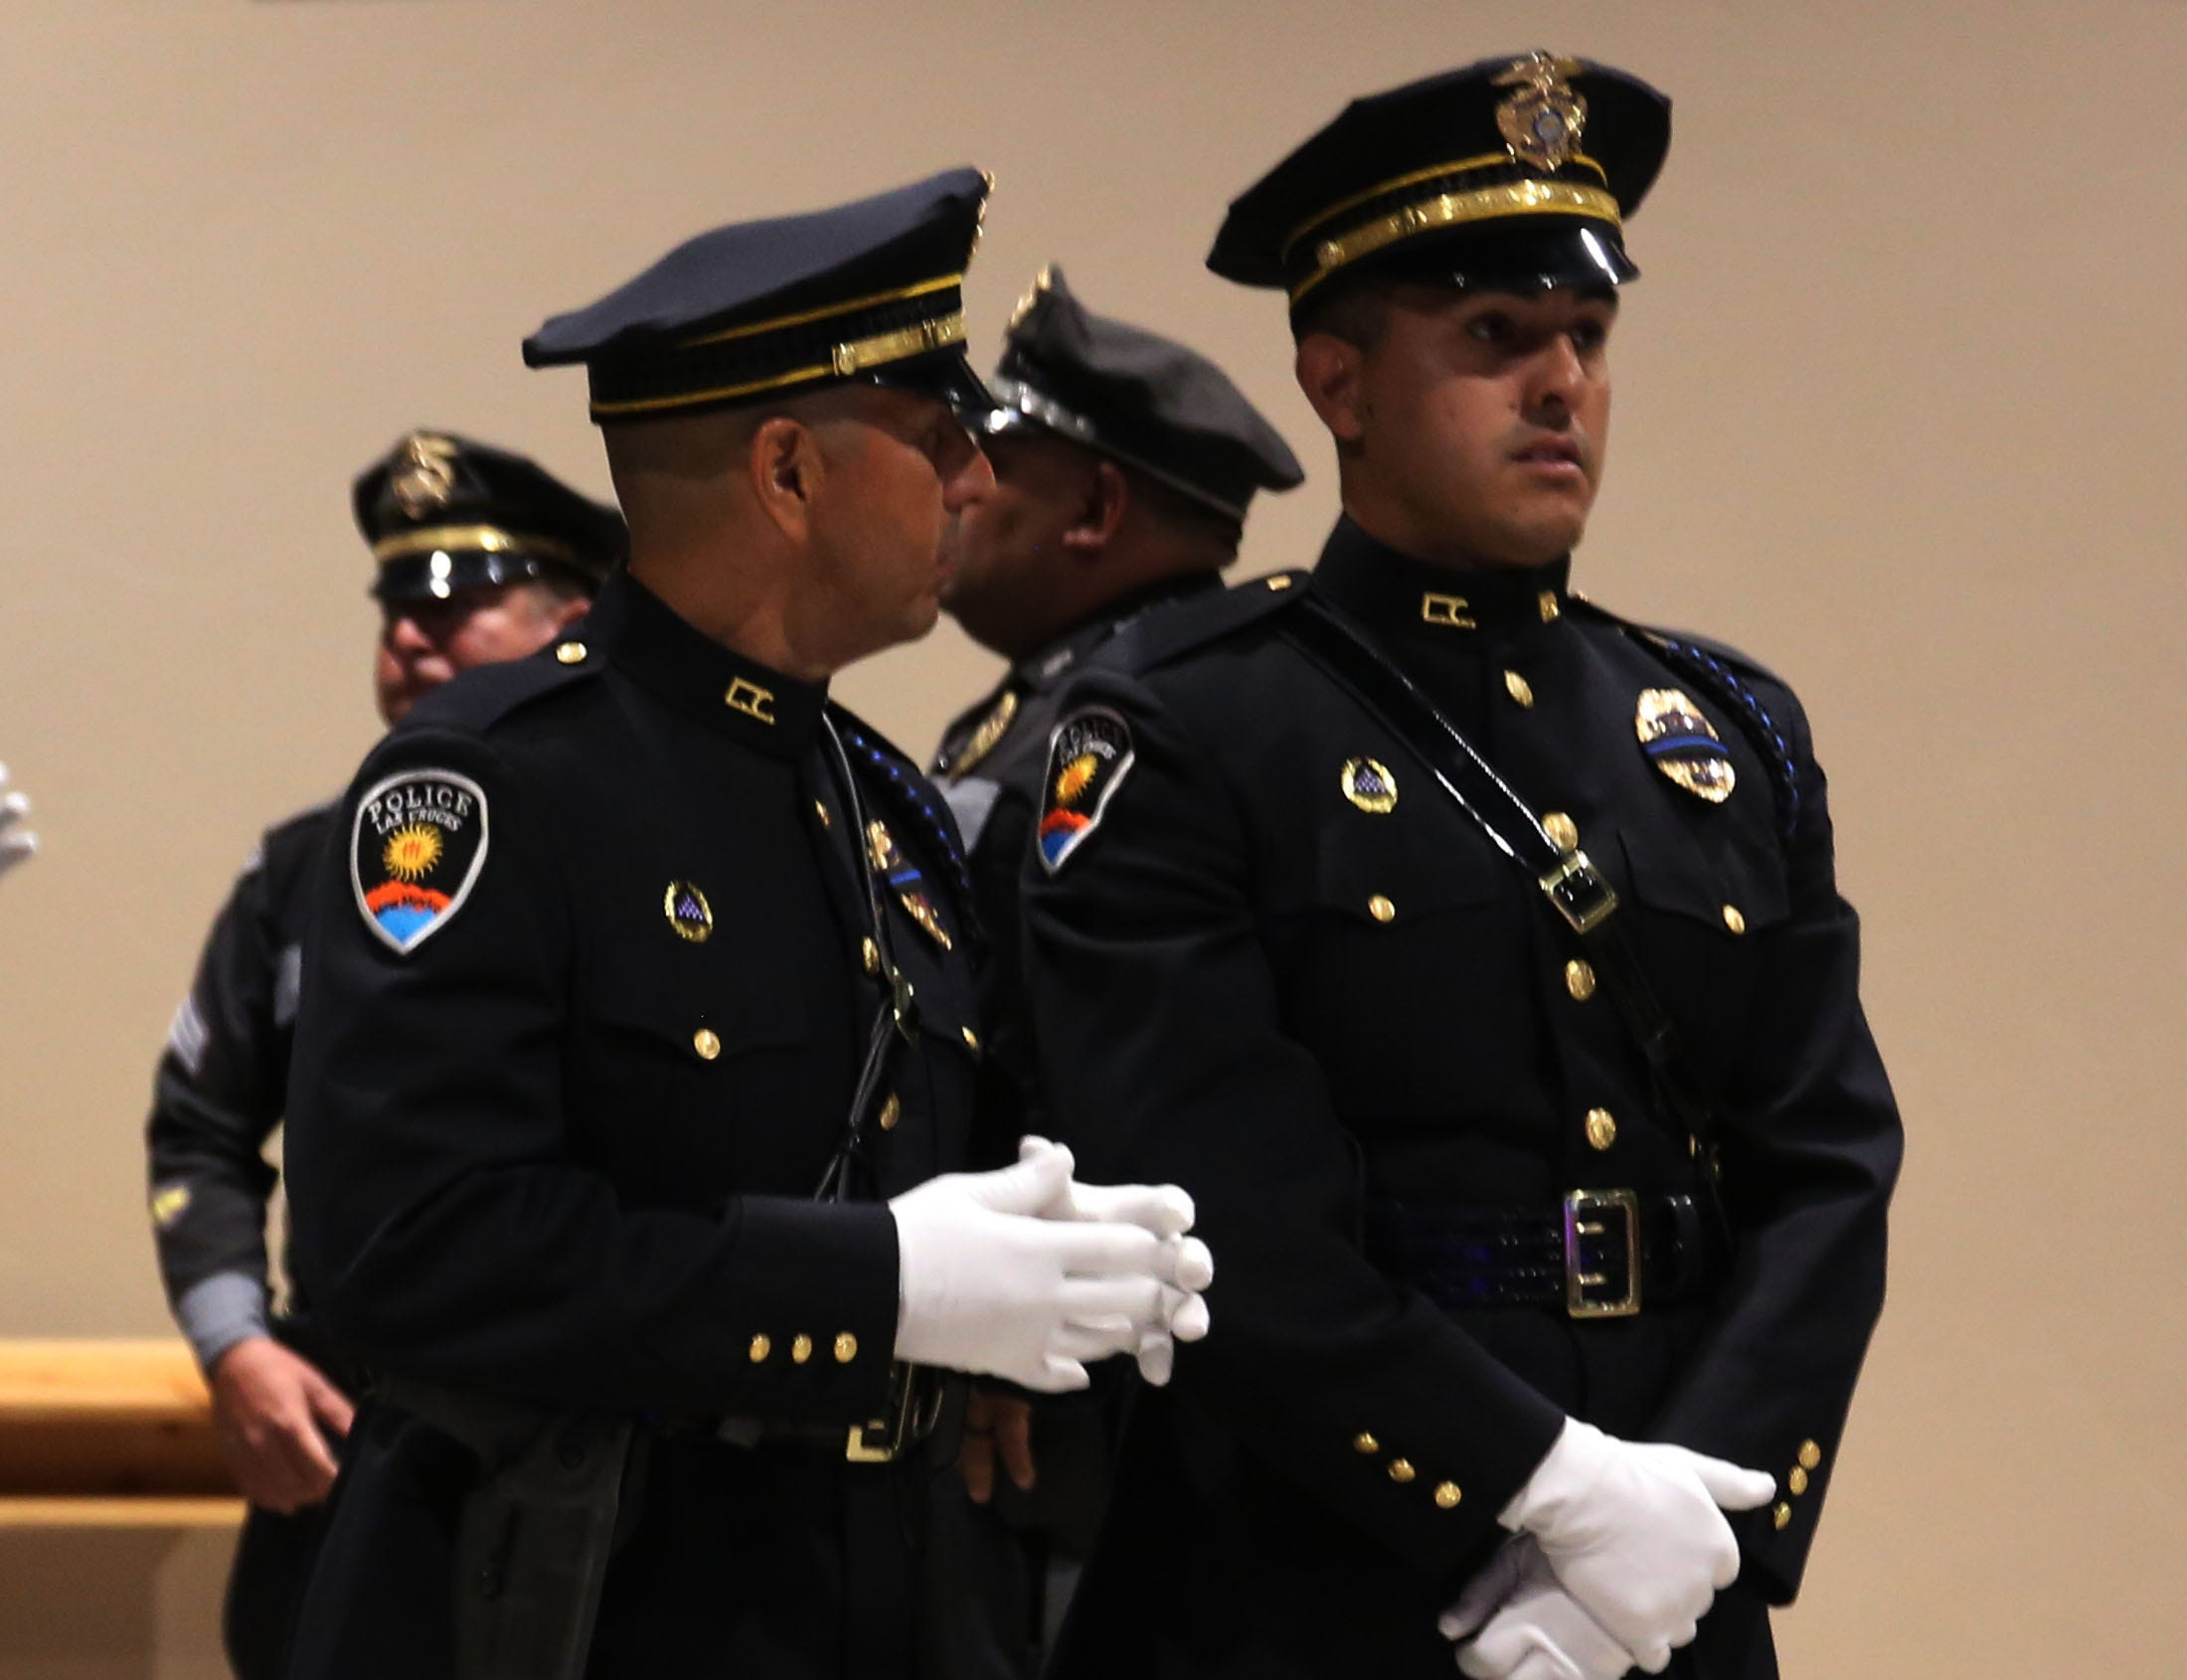 Police officers chat during the Fallen Officer Memorial, Tuesday May 7, 2019, at Mesilla Park Community Church.